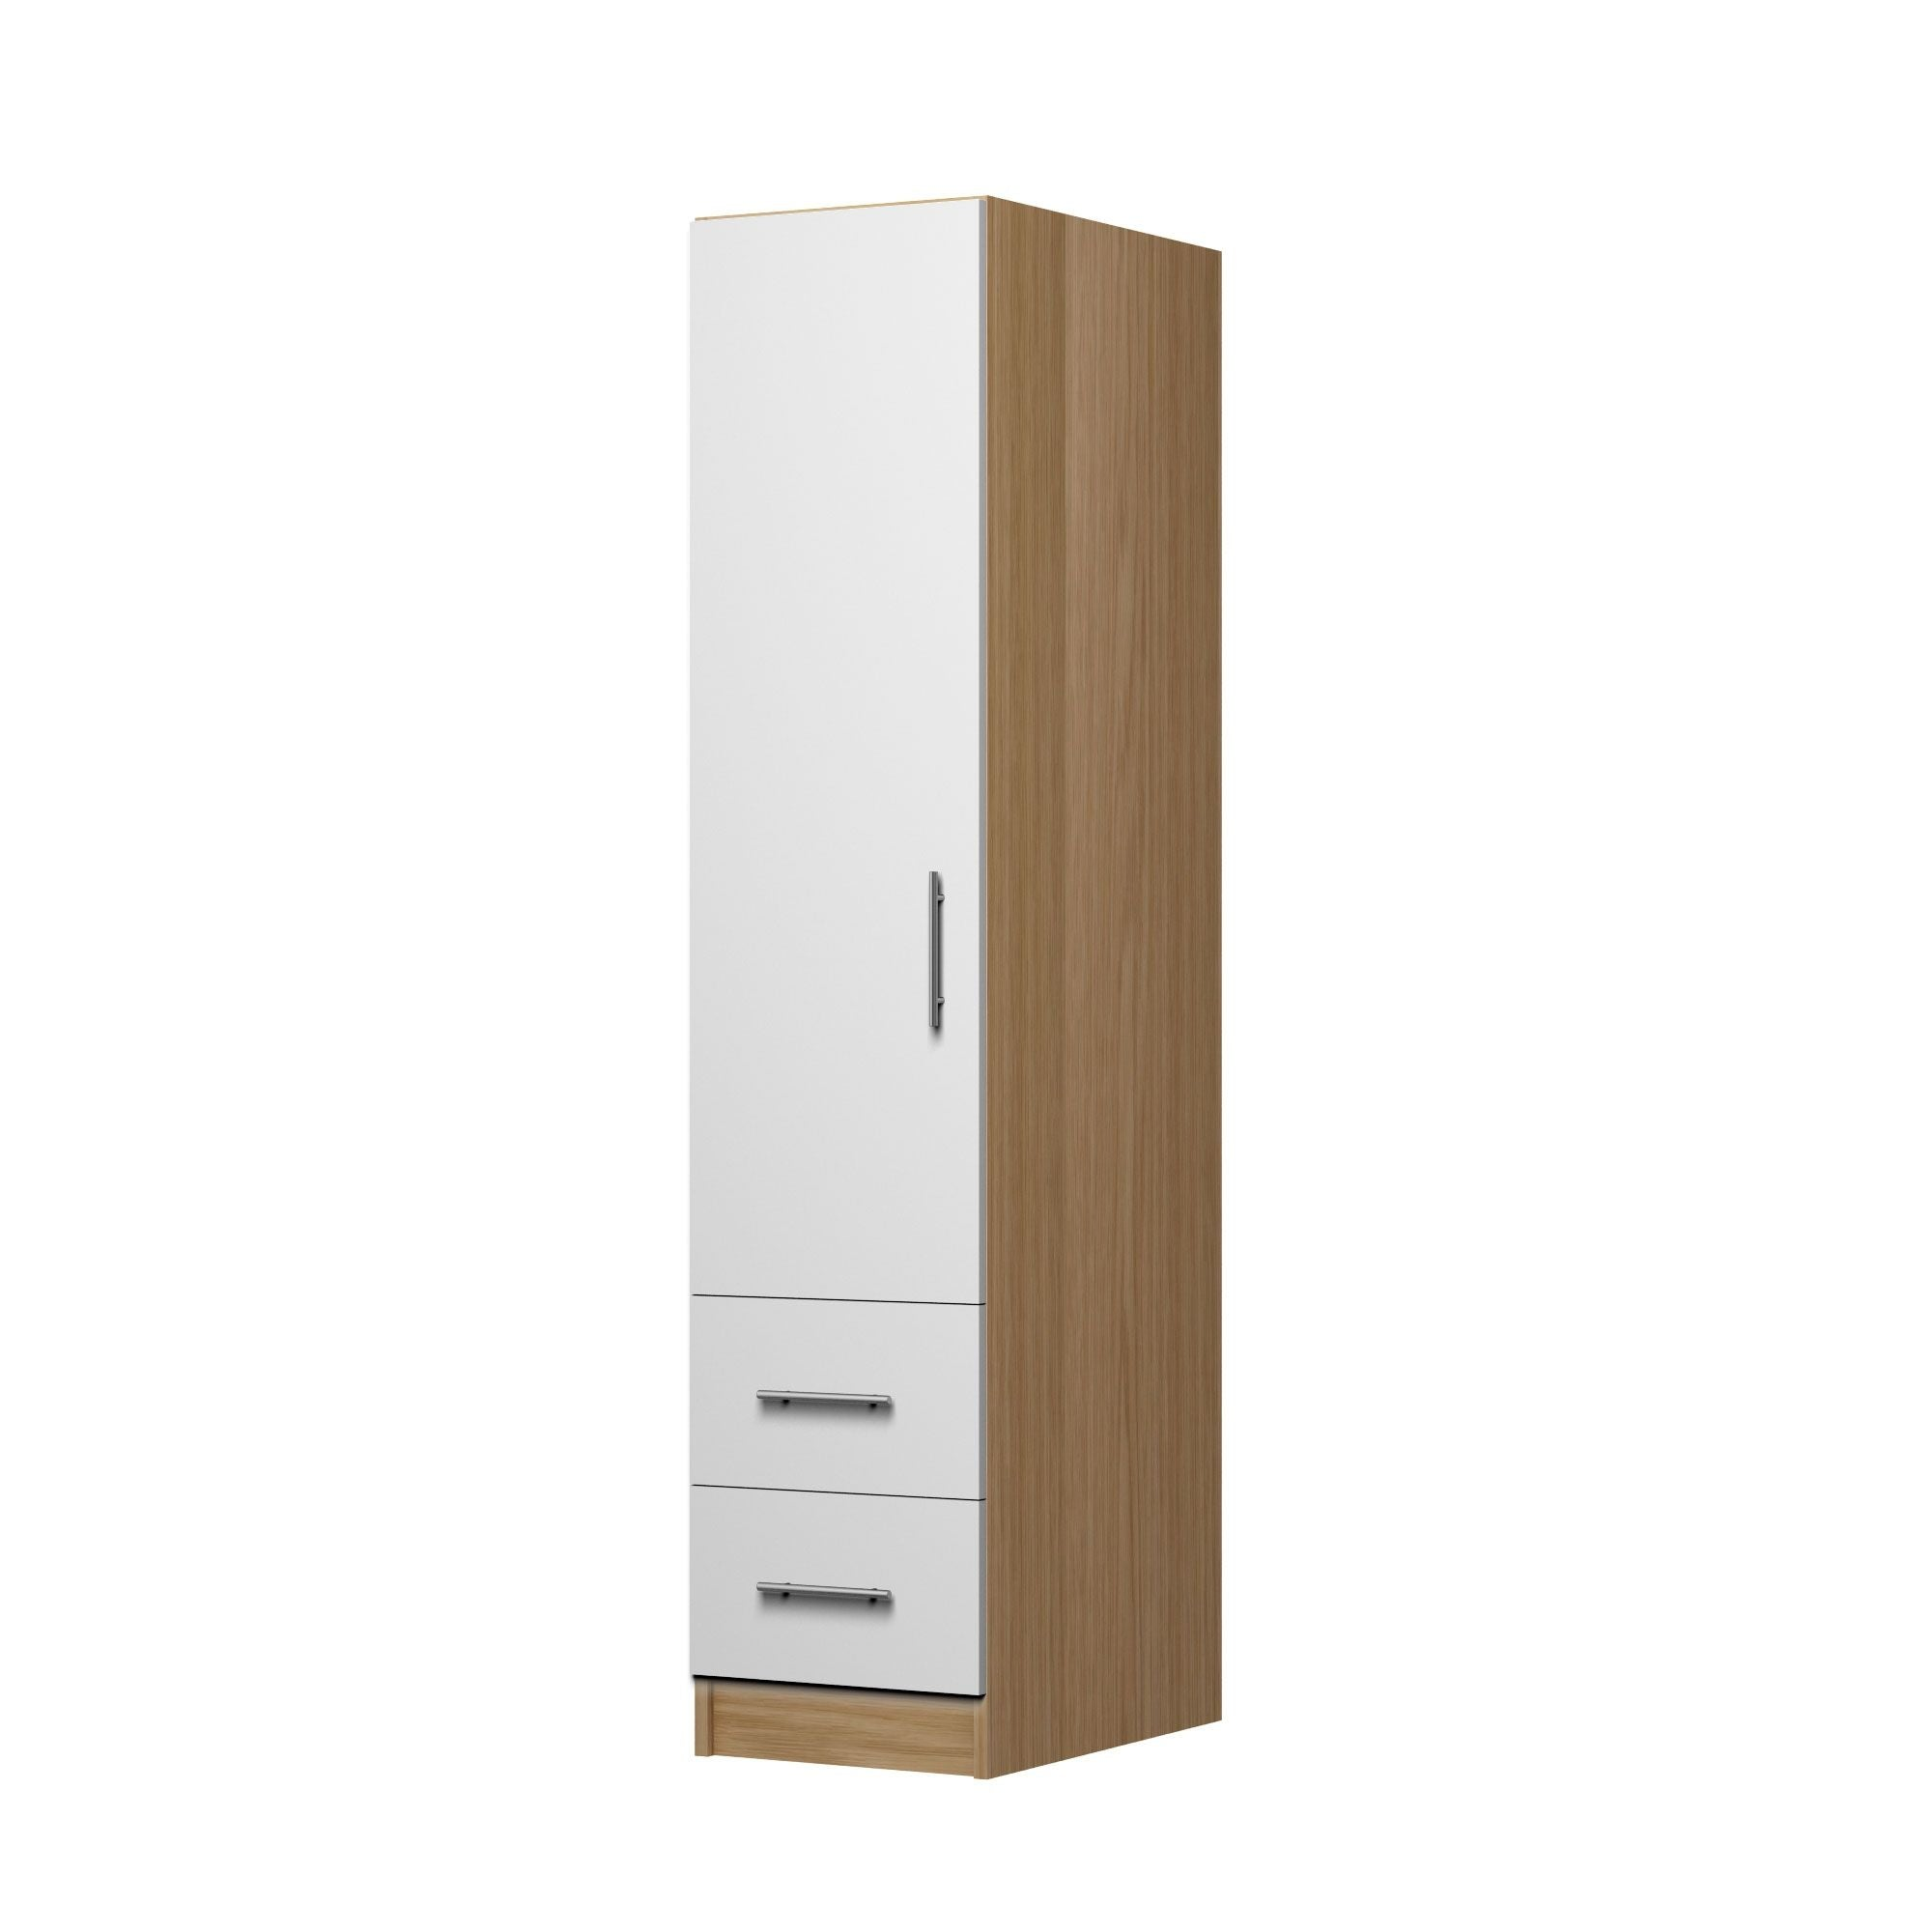 1 Door Wardrobe with 2 Drawers